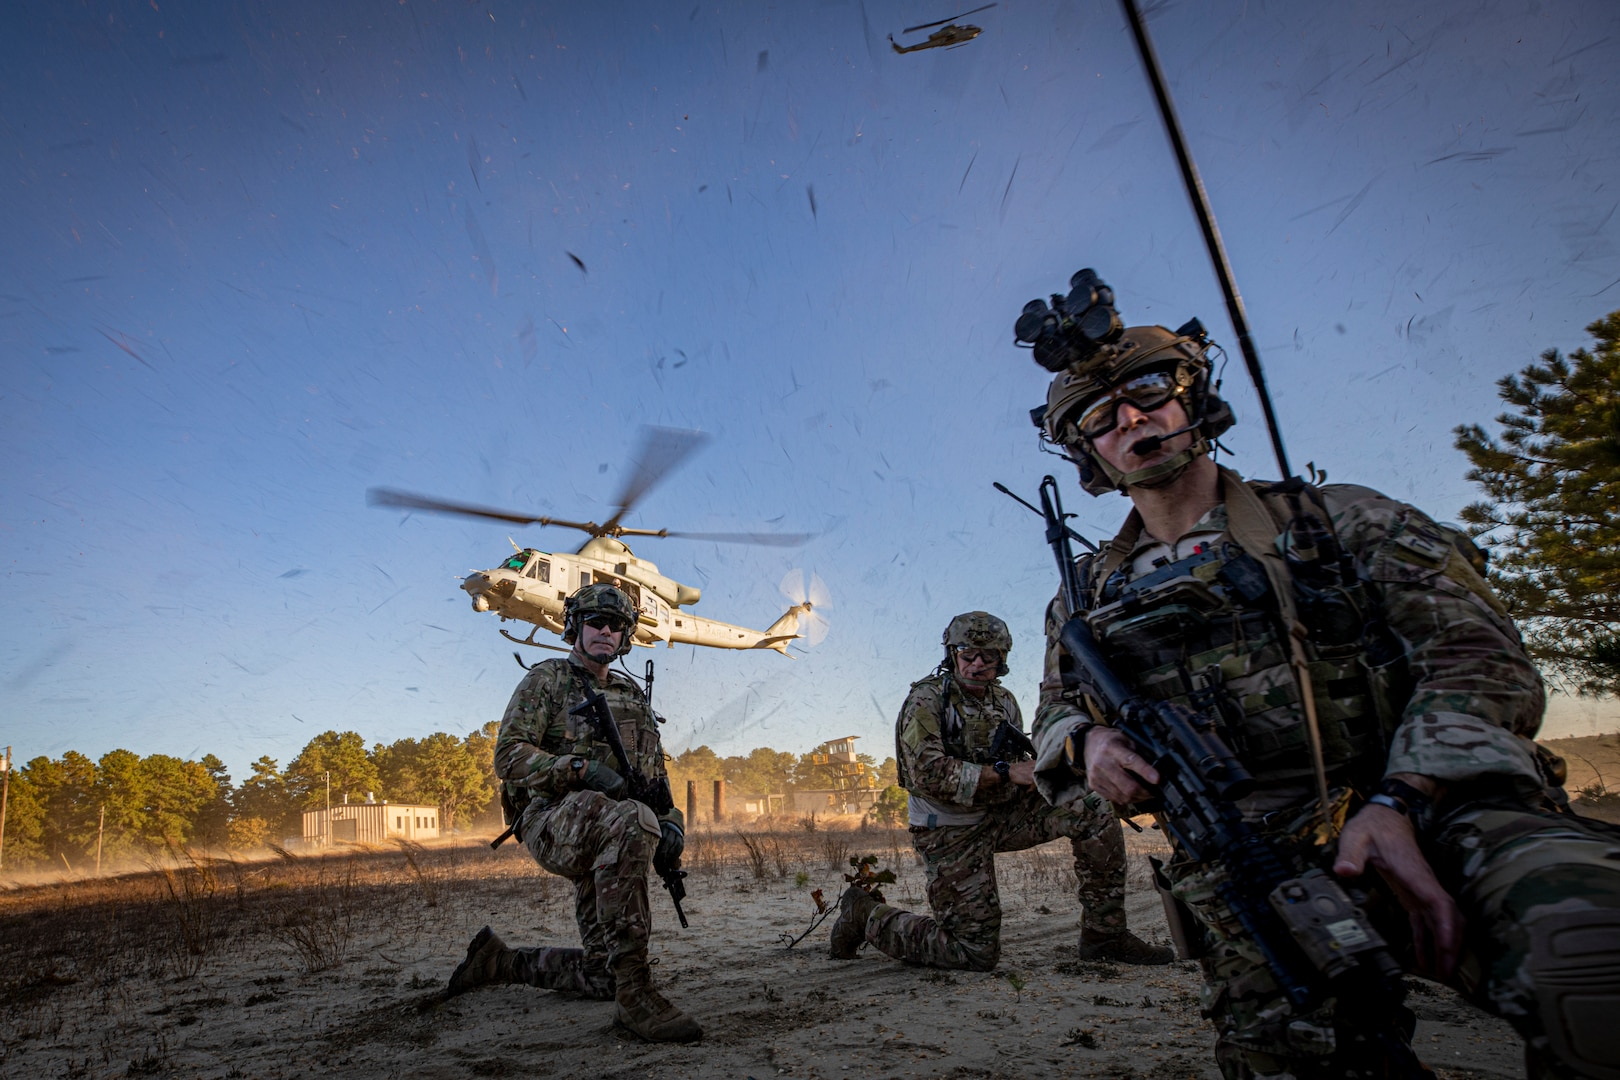 Marine Corps UH-1Y Venom with Marine Light Attack Helicopter Squadron 773 lands to pick up simulated casualty during live-fire exercise with Special Warfare Airmen from 227th Air Support Operations Squadron on Joint Base McGuire-Dix-Lakehurst, New Jersey, October 24, 2019 (U.S. Air National Guard/Matt Hecht)